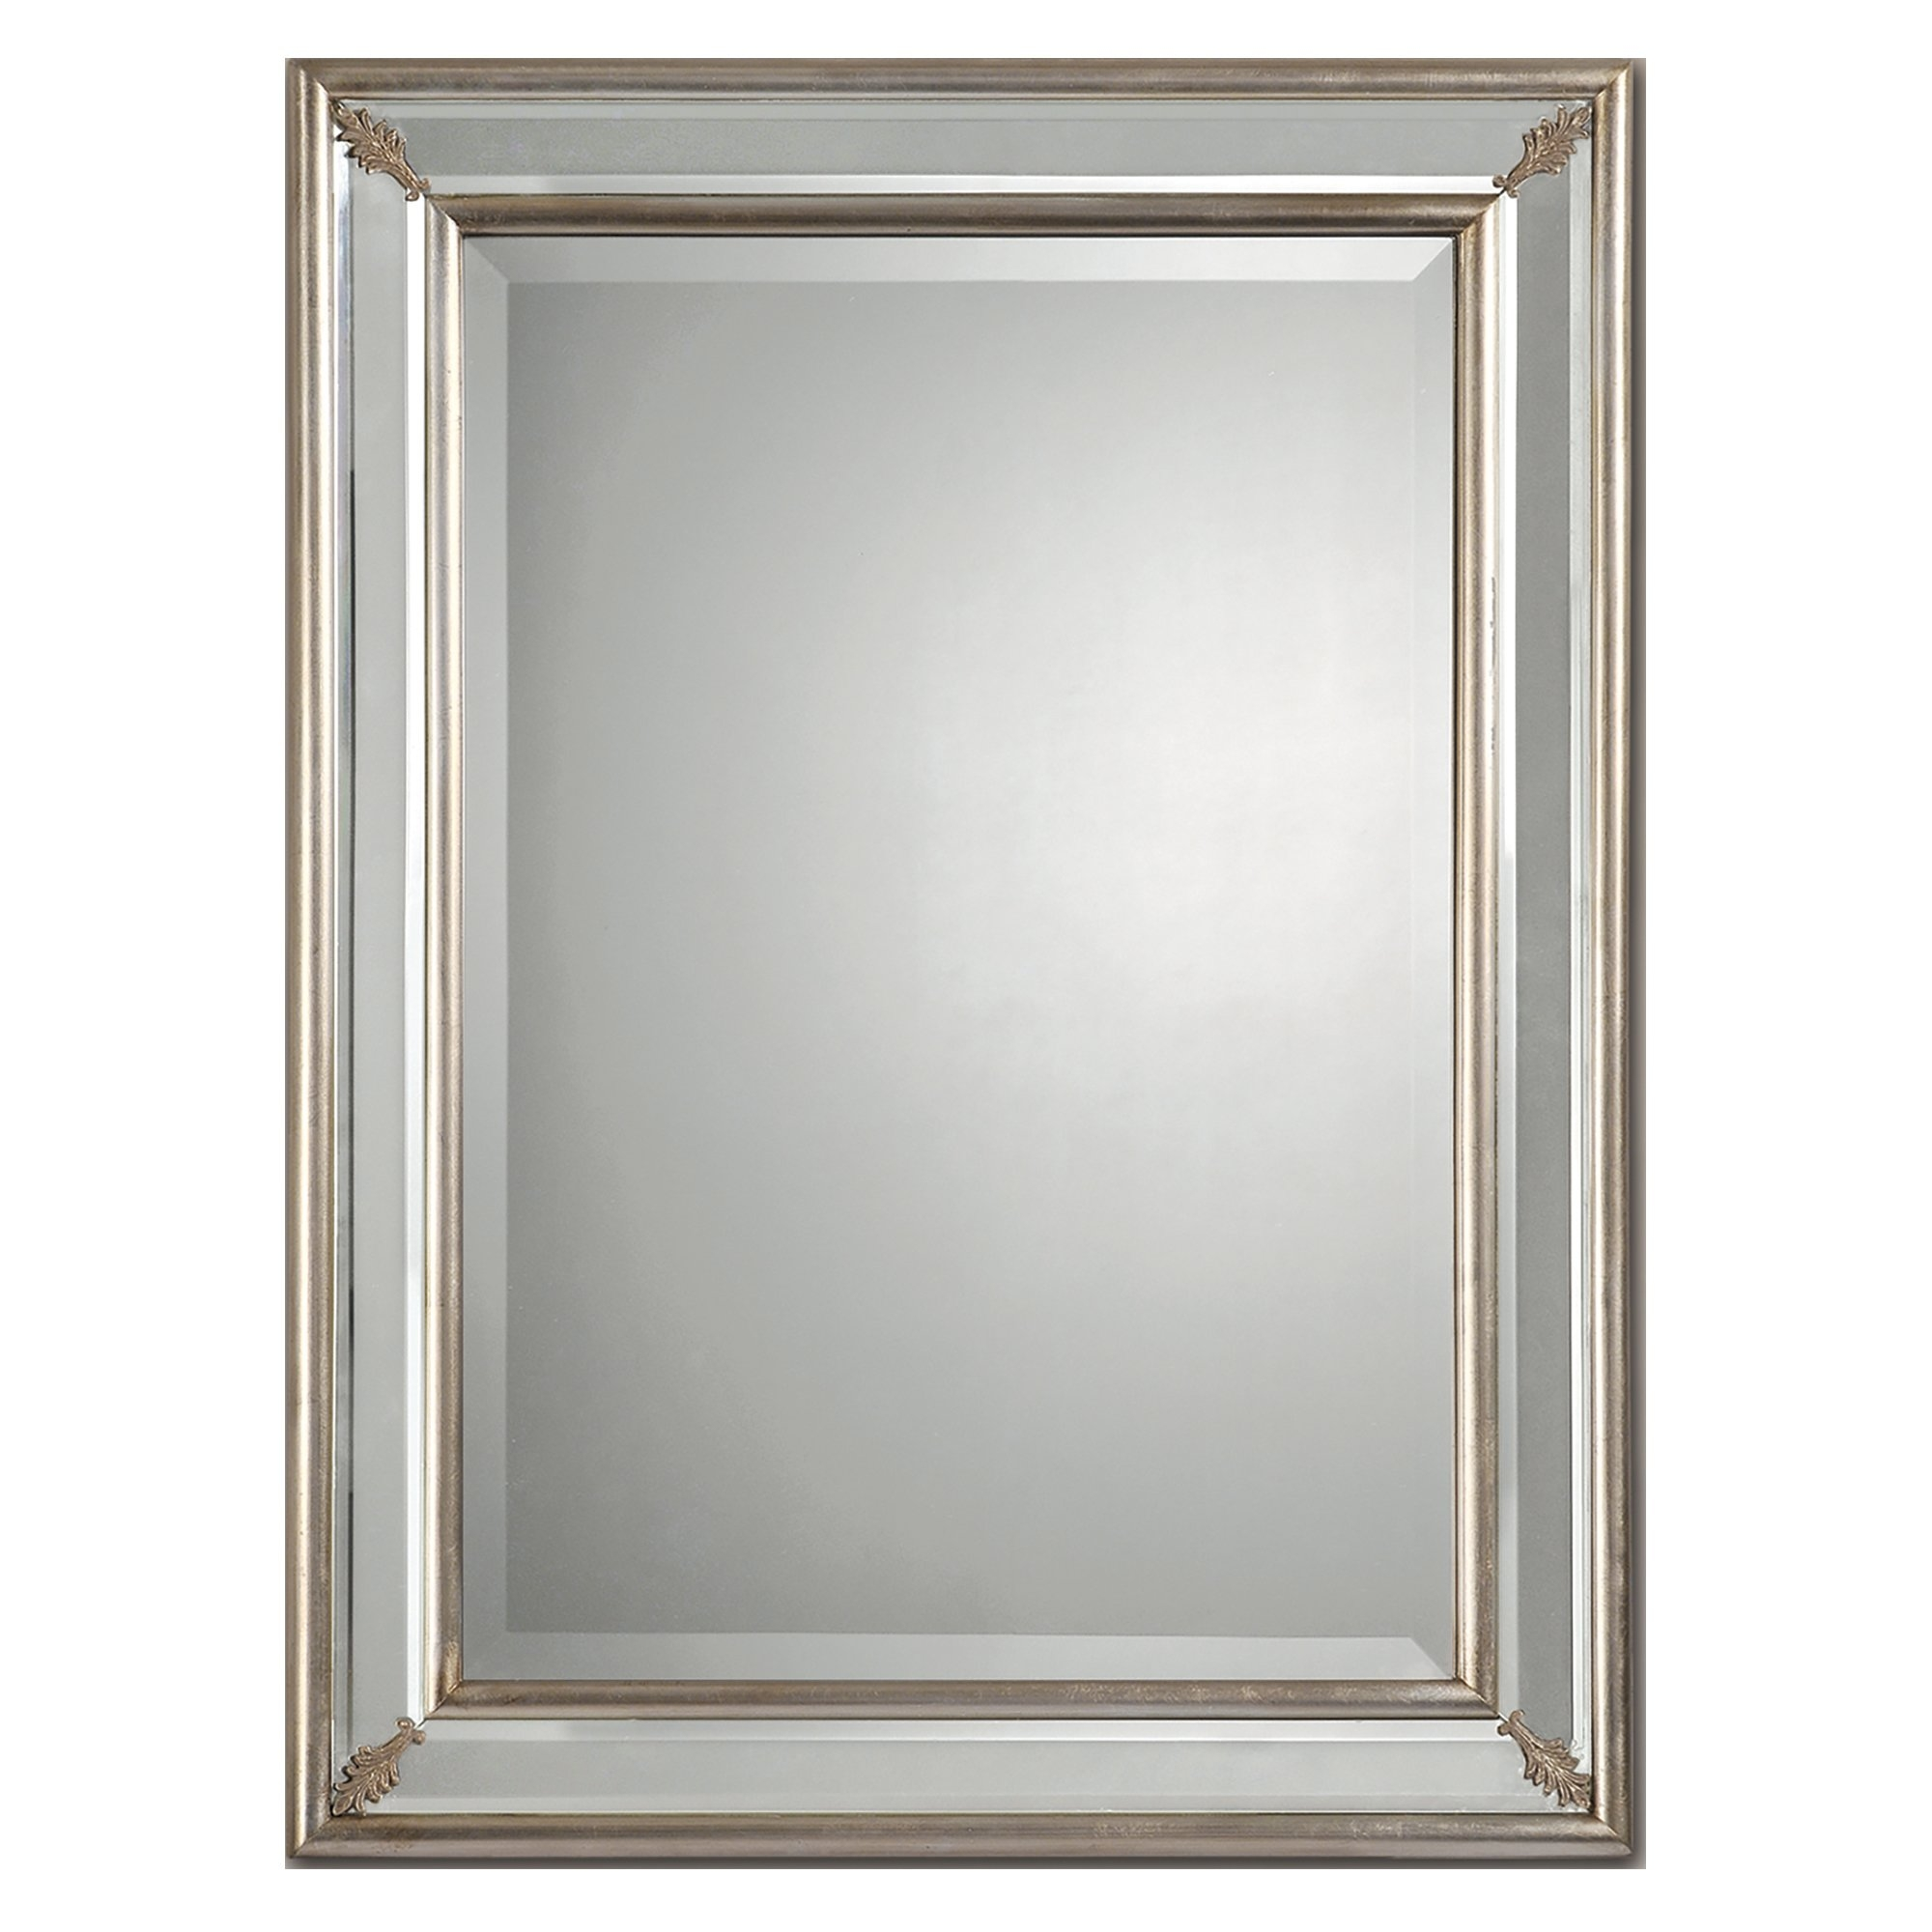 Ren Wil Beveled Wall Mirror Reviews Wayfair For Double Bevelled Mirror (Image 9 of 15)